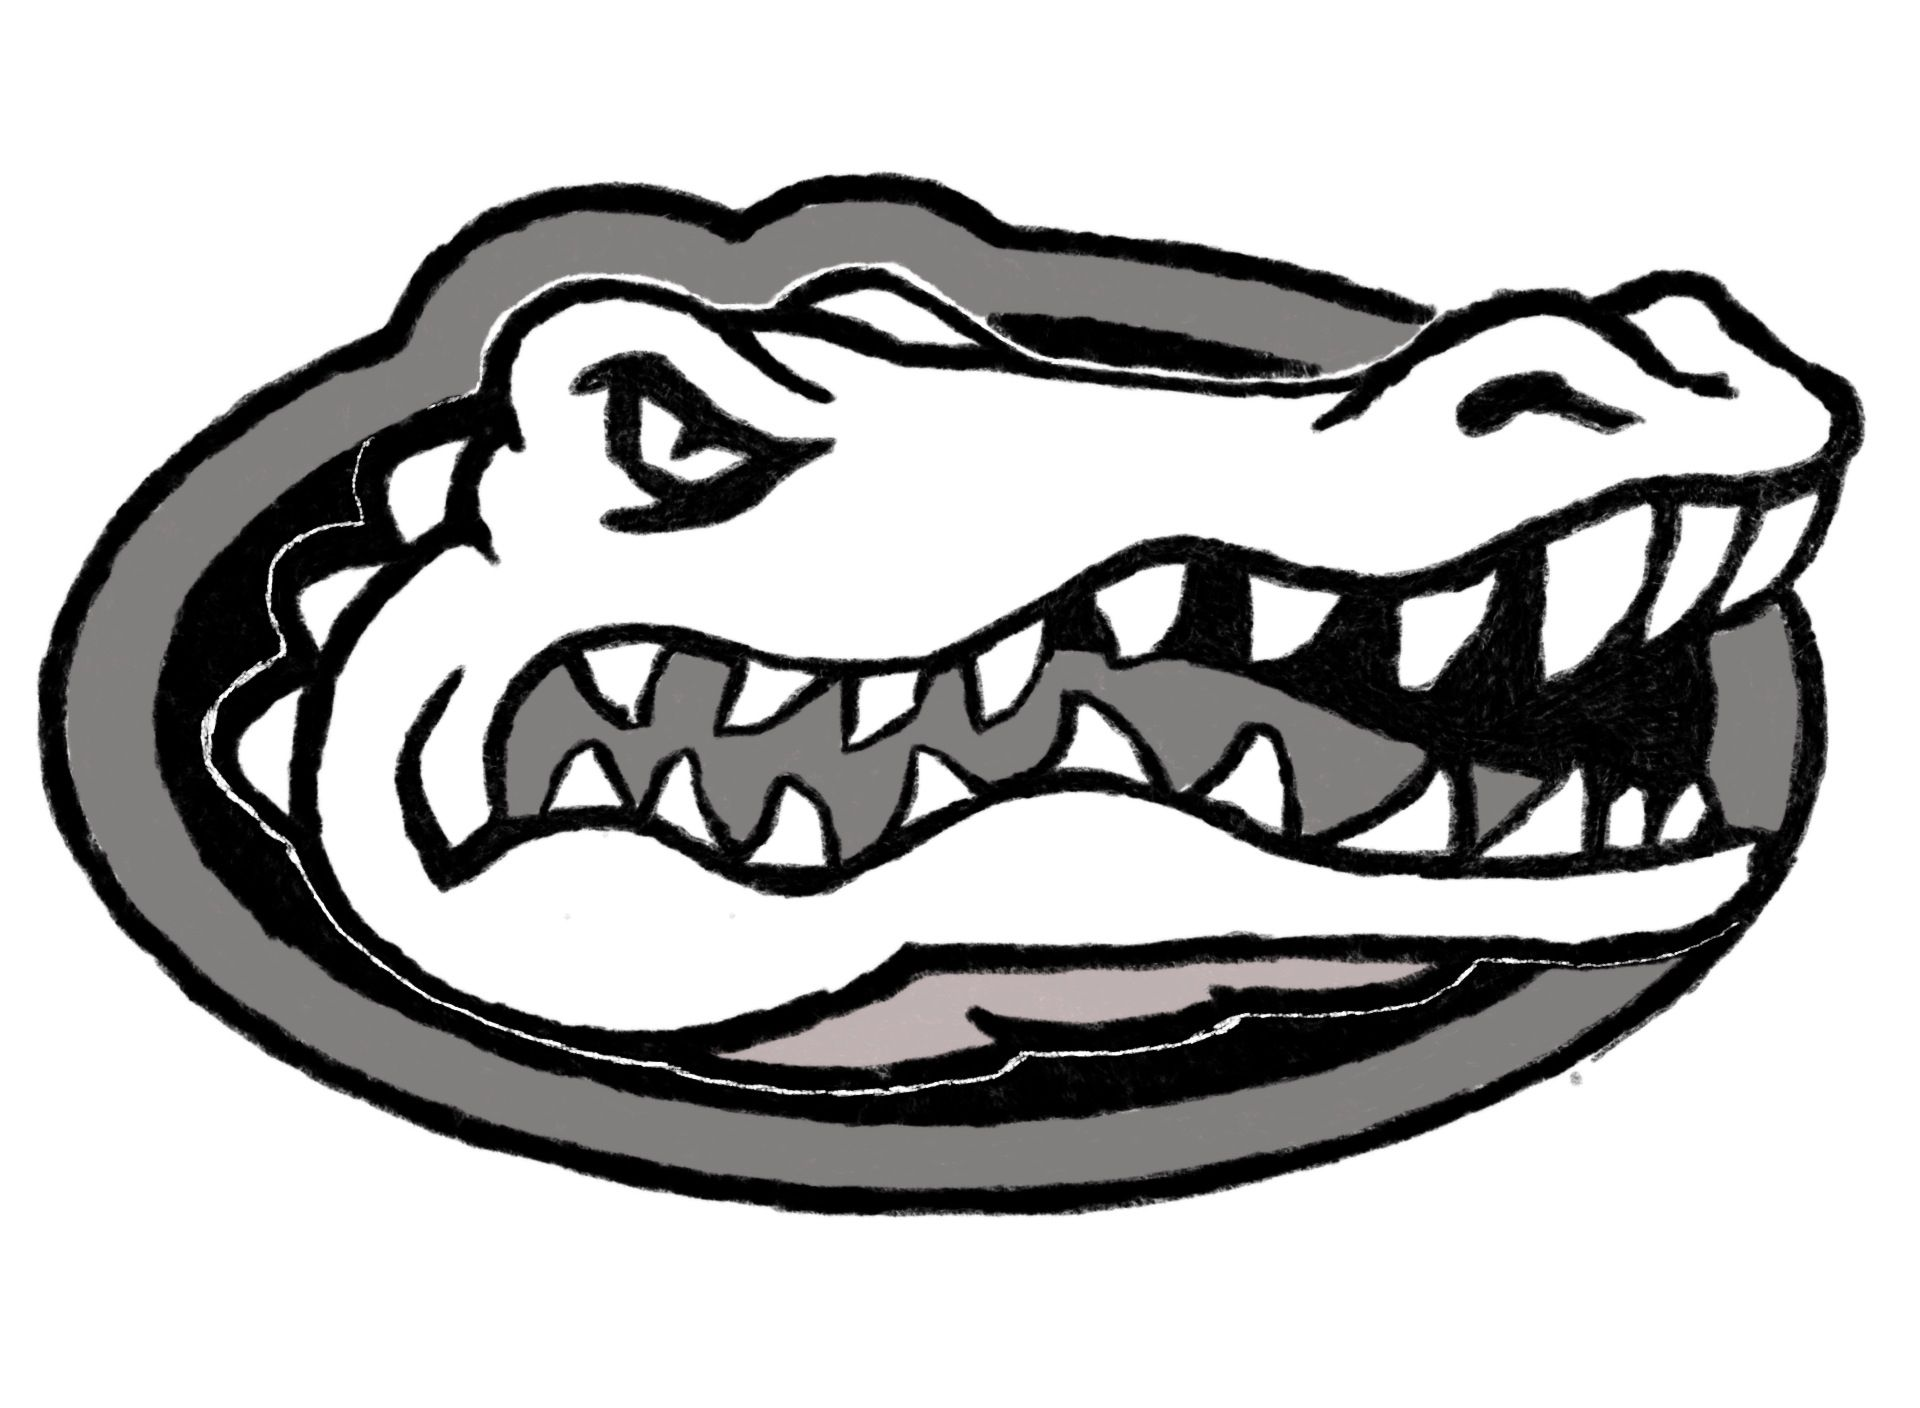 Florida Gators Mascot Using Procreate And Jot Pro On An Ipad 3